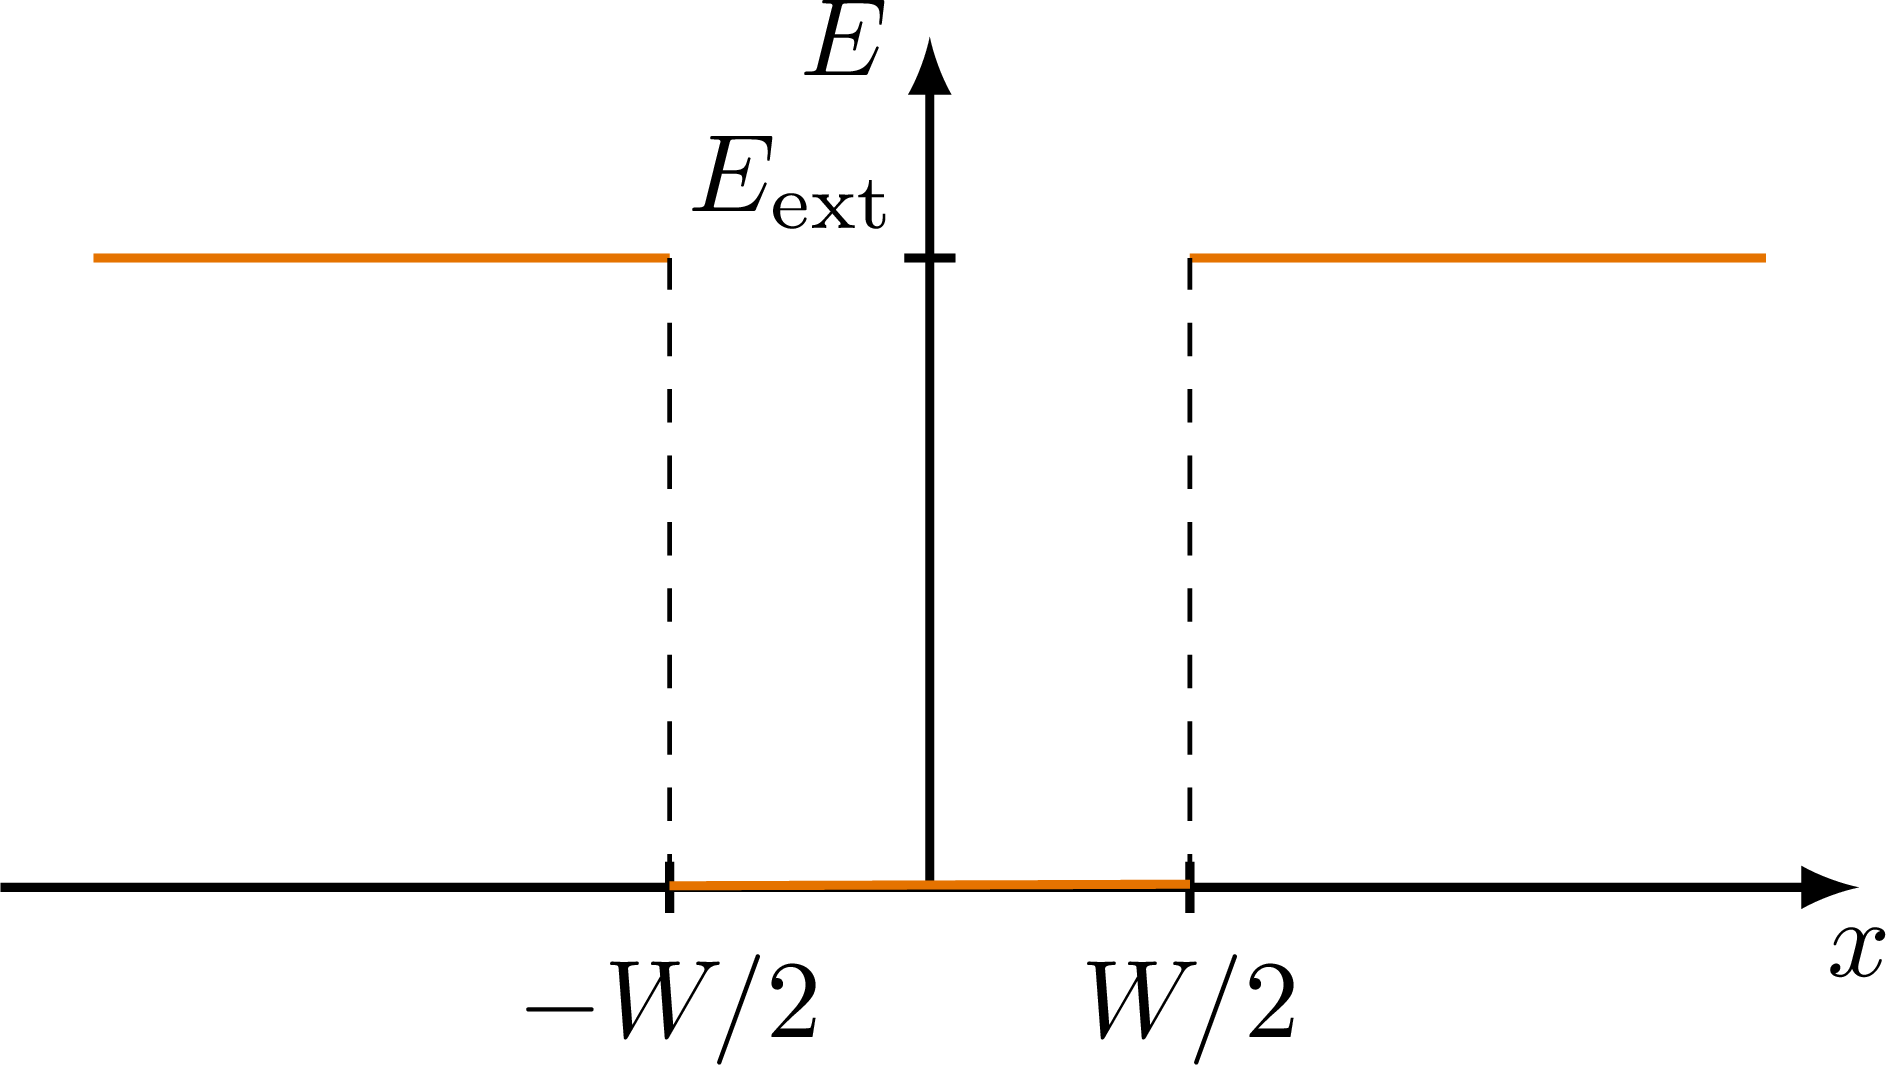 electric_field_plots-006.png